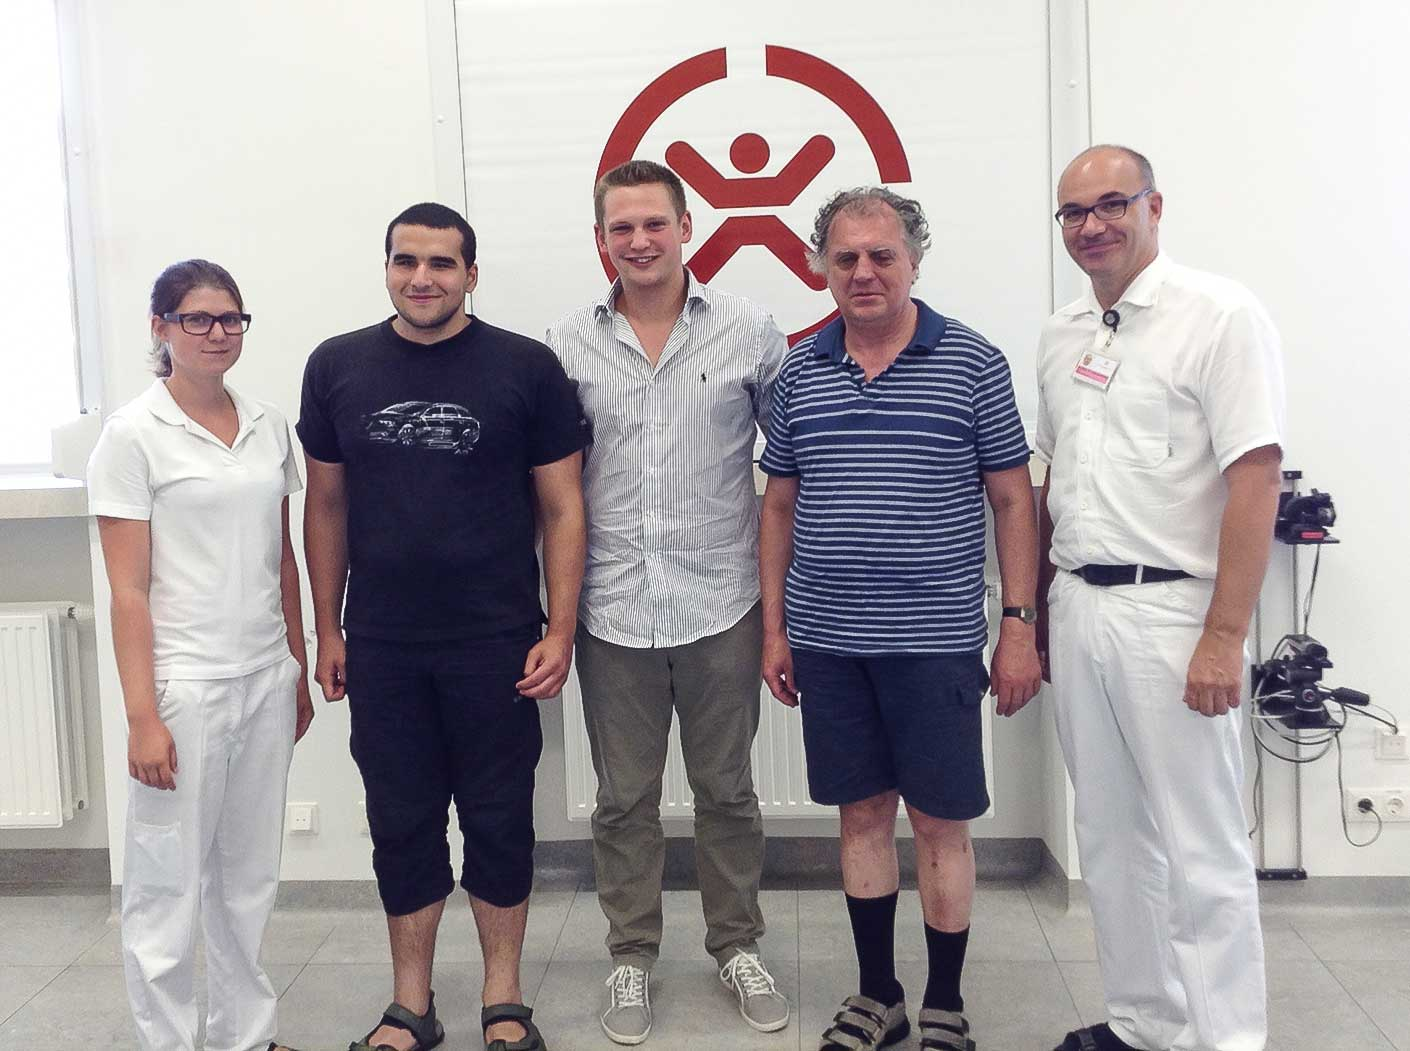 The picture shows, from the left:From the left: Assistant, Sami Demirel CEO Kevin Pajestka, Erich Schmid DI Dr. Andreas Kranz (Head of walking and gait analysis lab Speising)